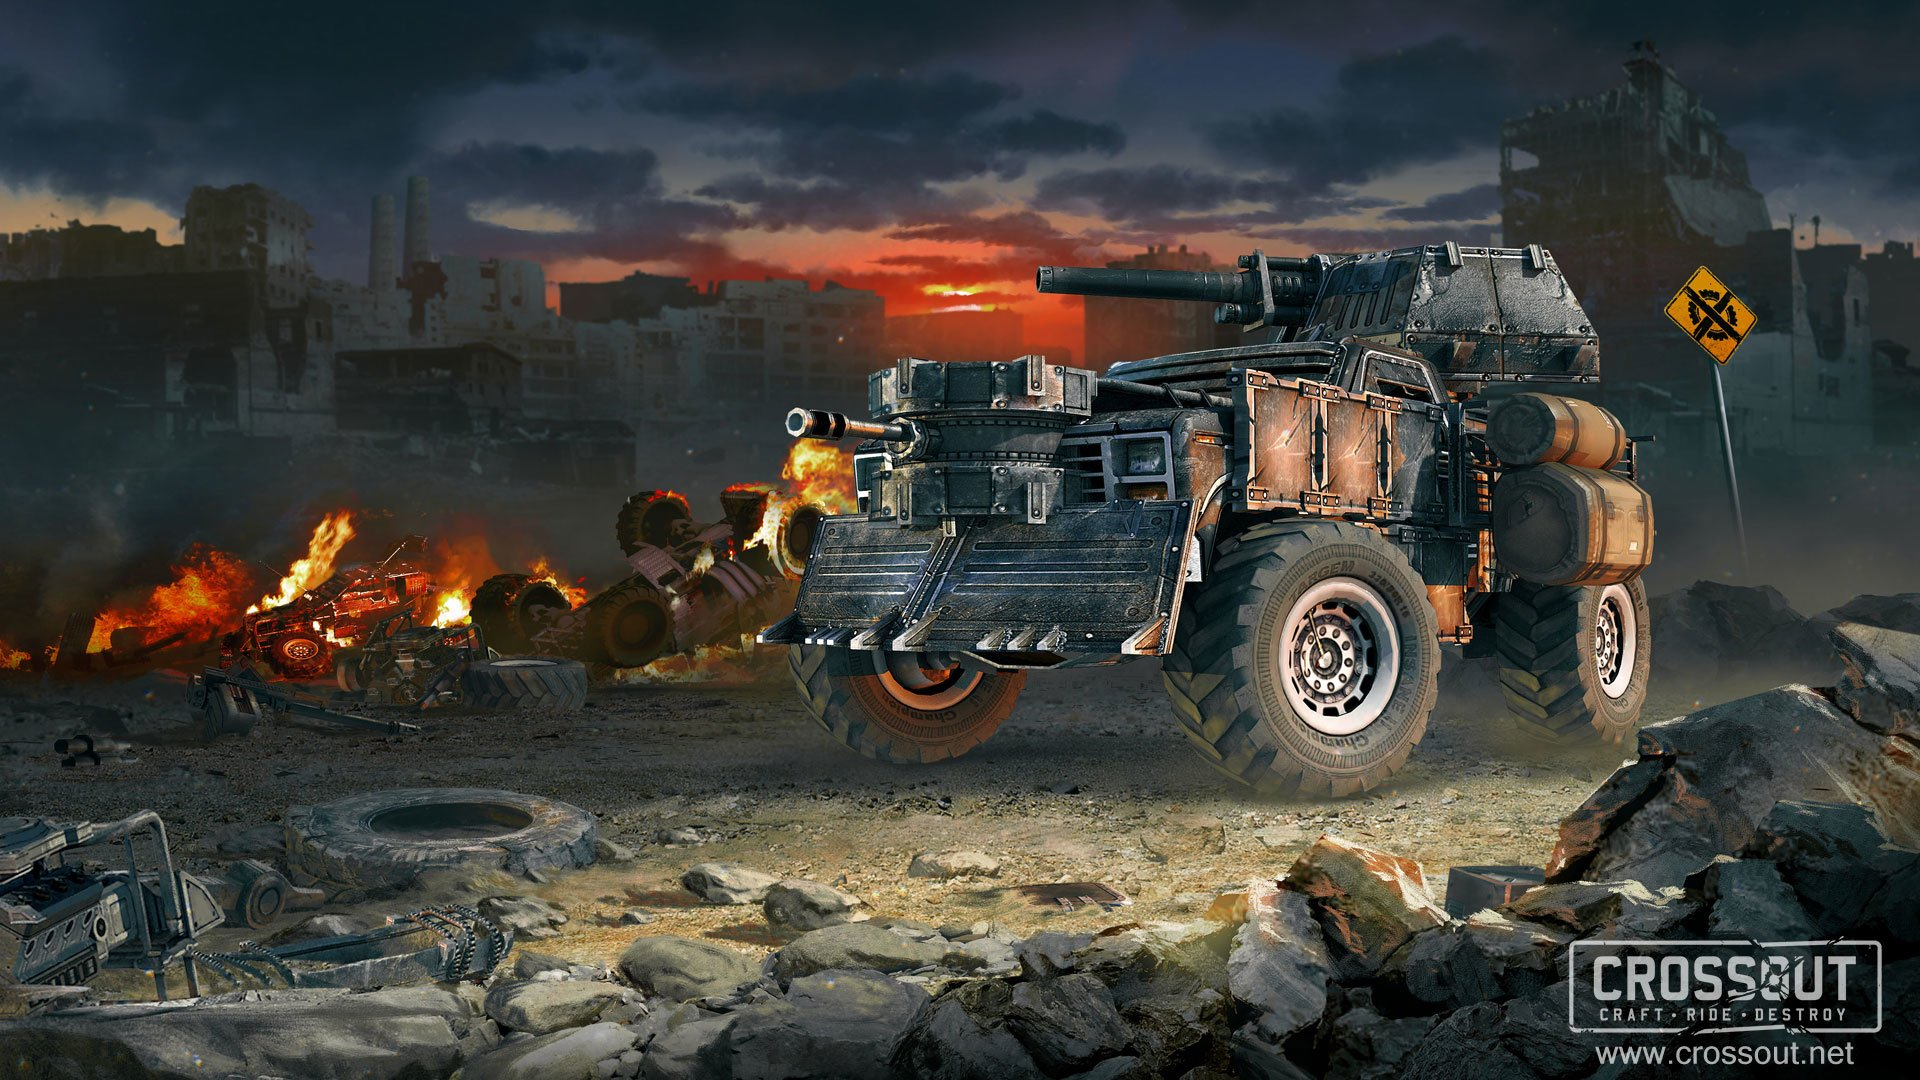 16 Crossout Hd Wallpapers Background Images Wallpaper Abyss